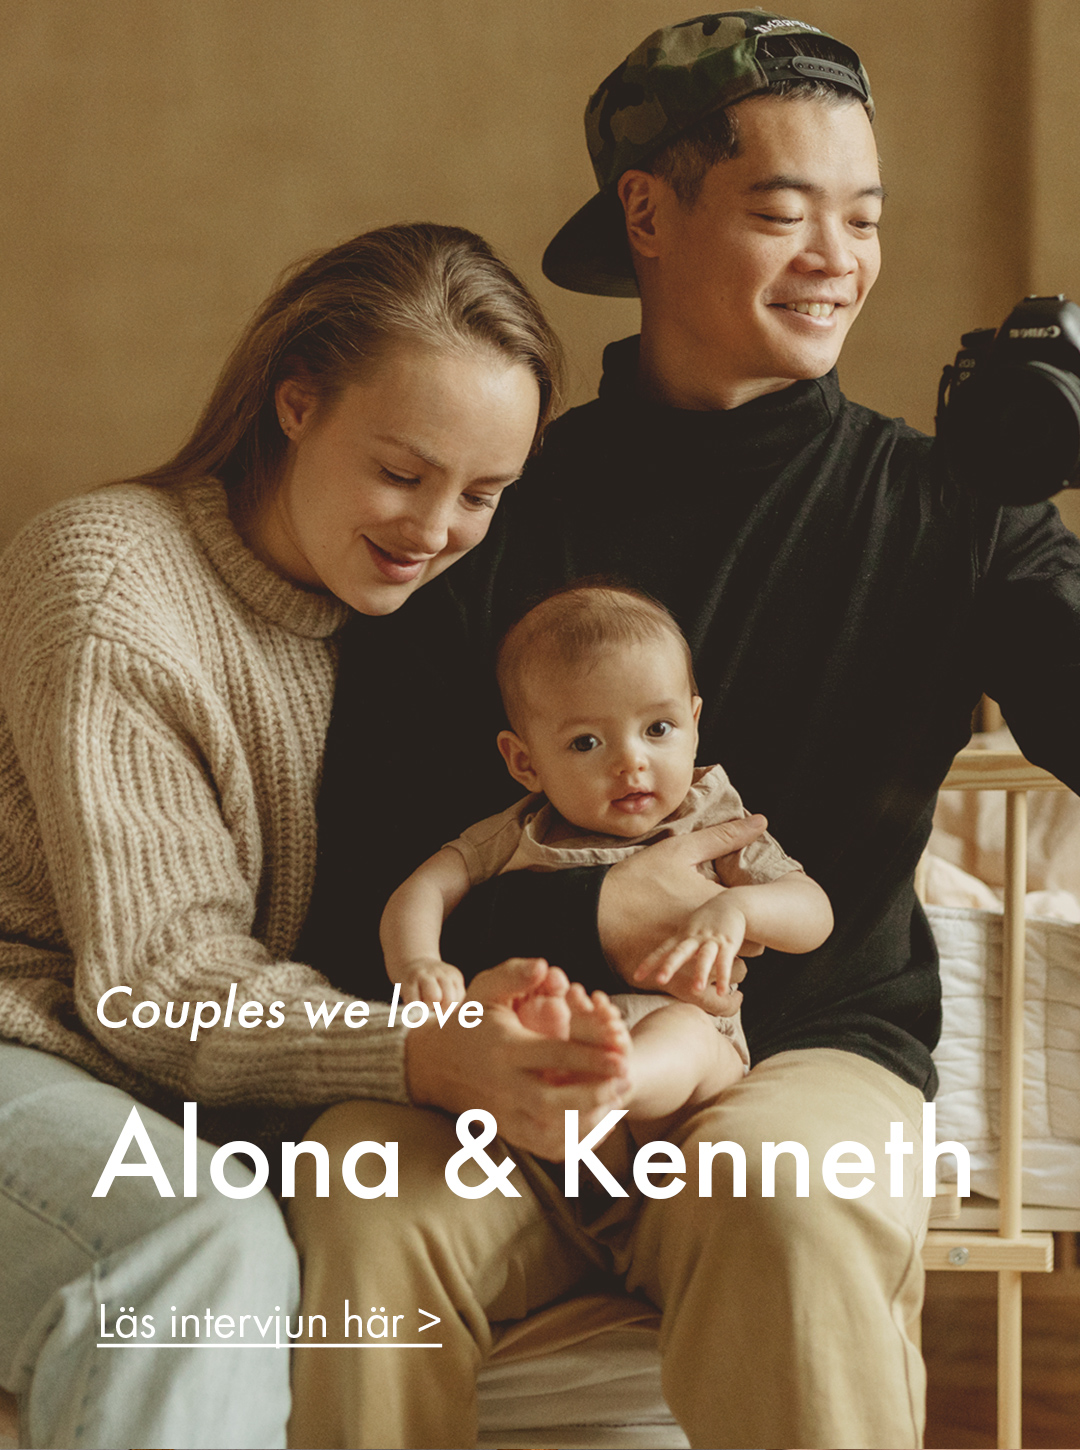 Alona & Kenneth